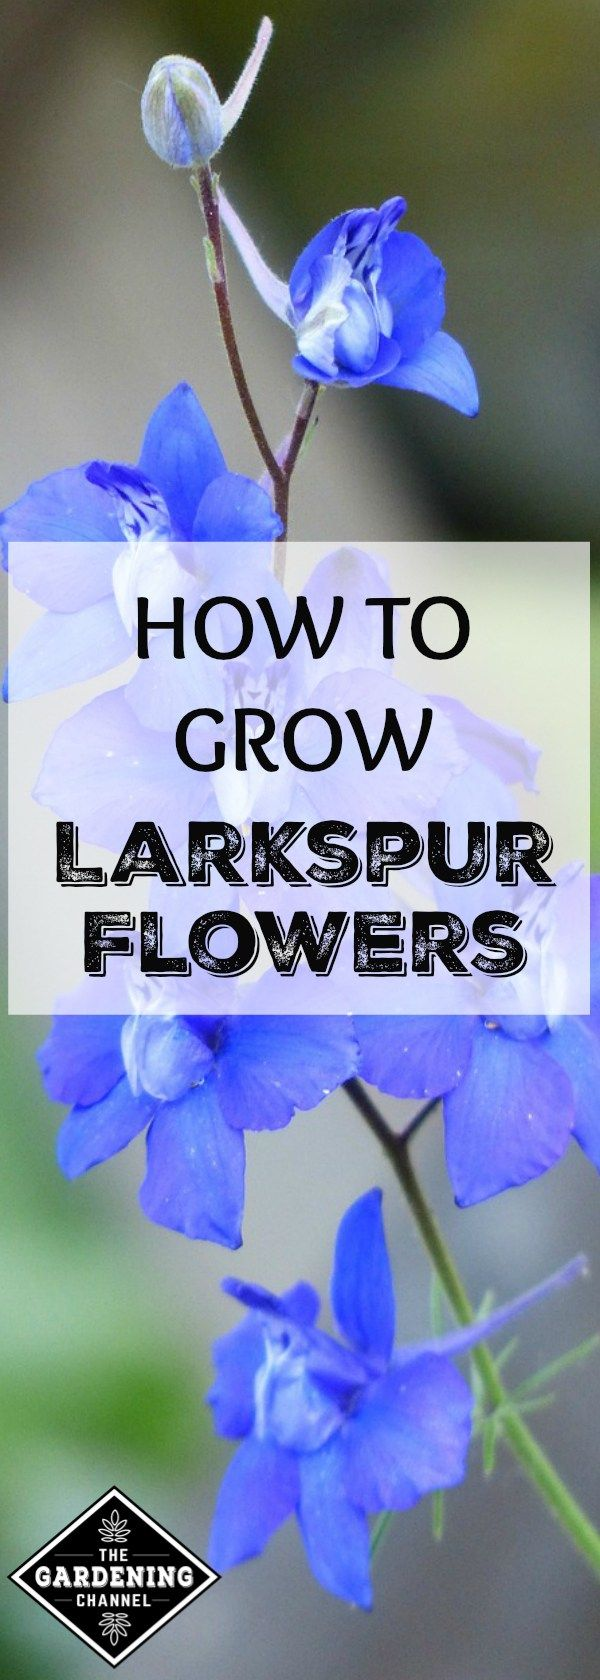 Larkspurs Are Easy Annual Flowers To Grow That Are Tough Hardy And